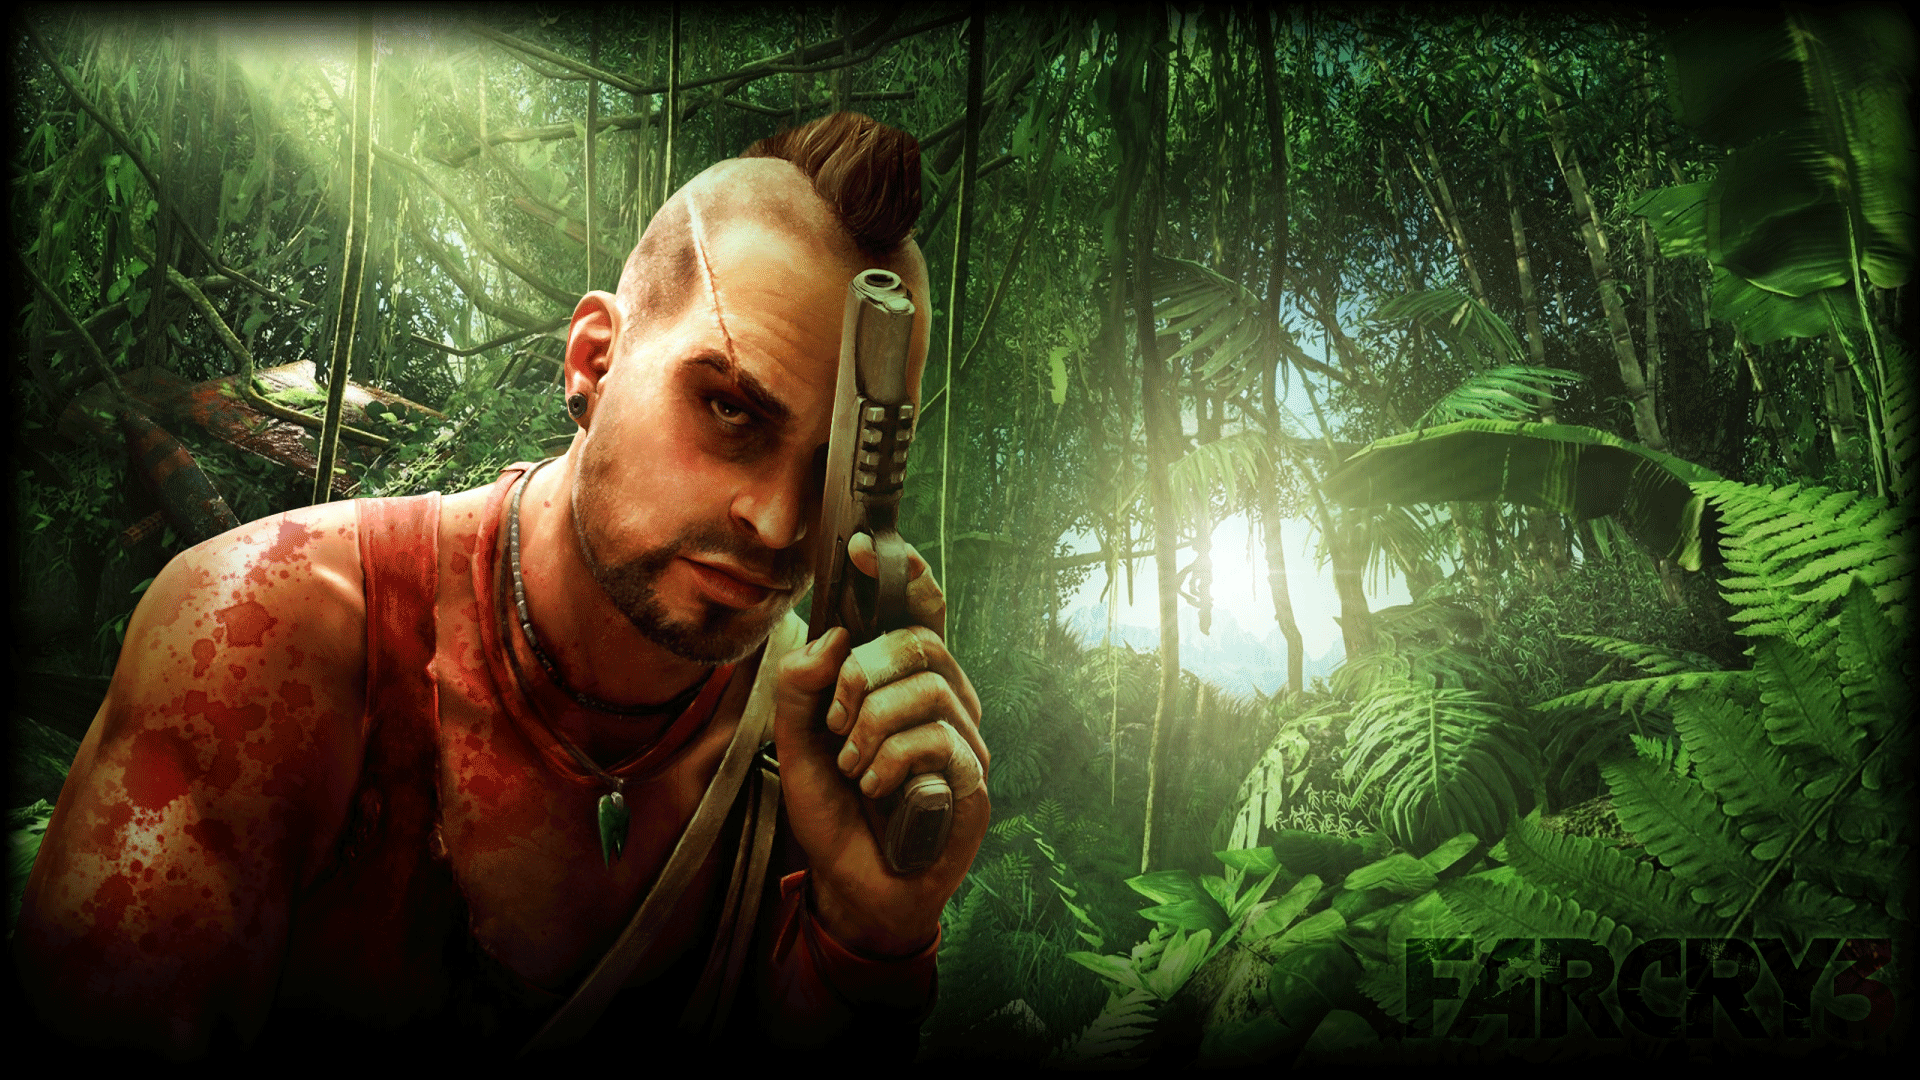 Free Download Far Cry 3 Vaas Wallpaper 1080p Far Cry 3 Background By 1920x1080 For Your Desktop Mobile Tablet Explore 49 Far Cry 3 Wallpaper 1080p Cry Of Fear